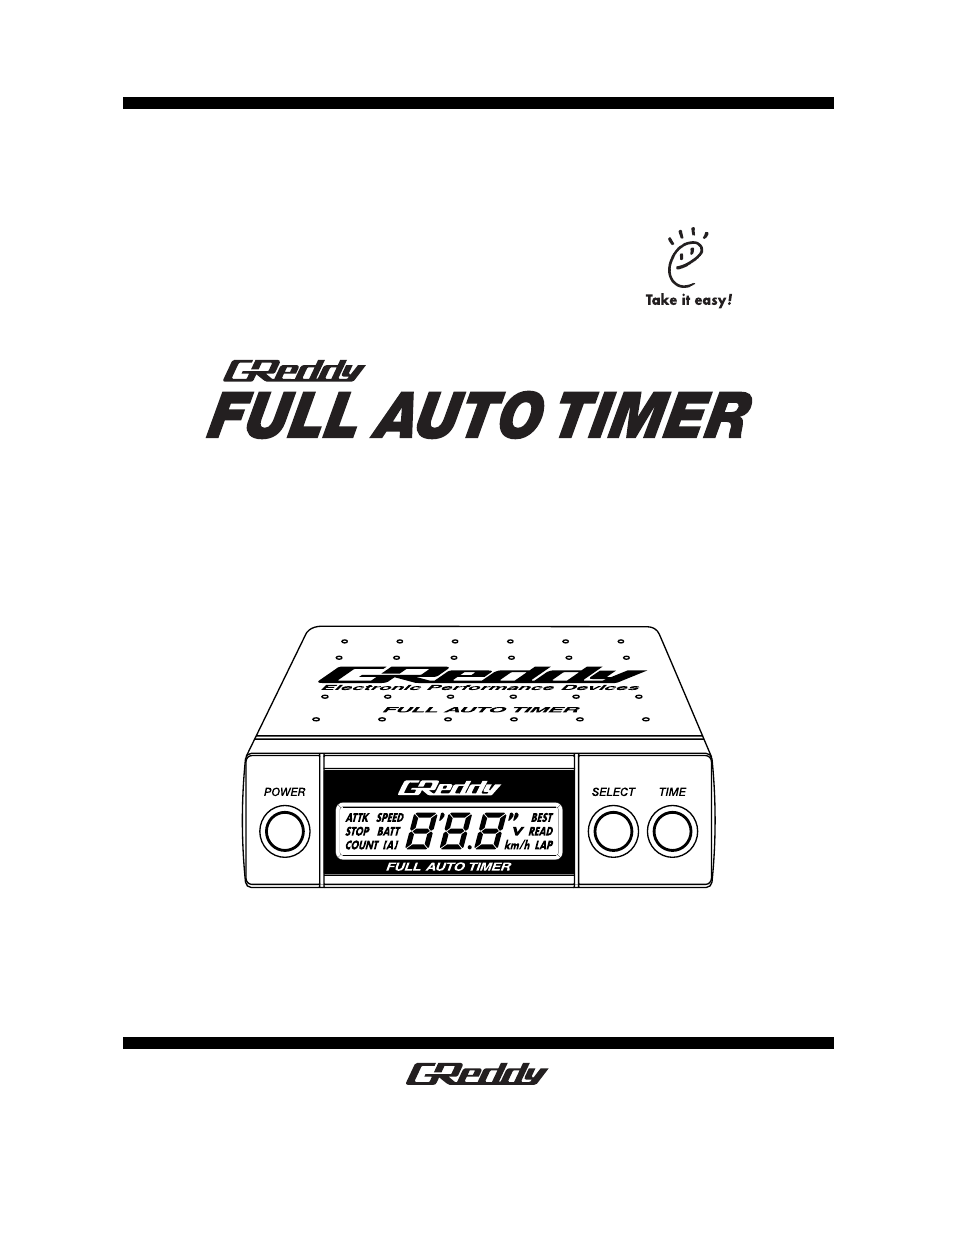 Greddy Turbo Timer Wiring Diagram And Schematics Harness